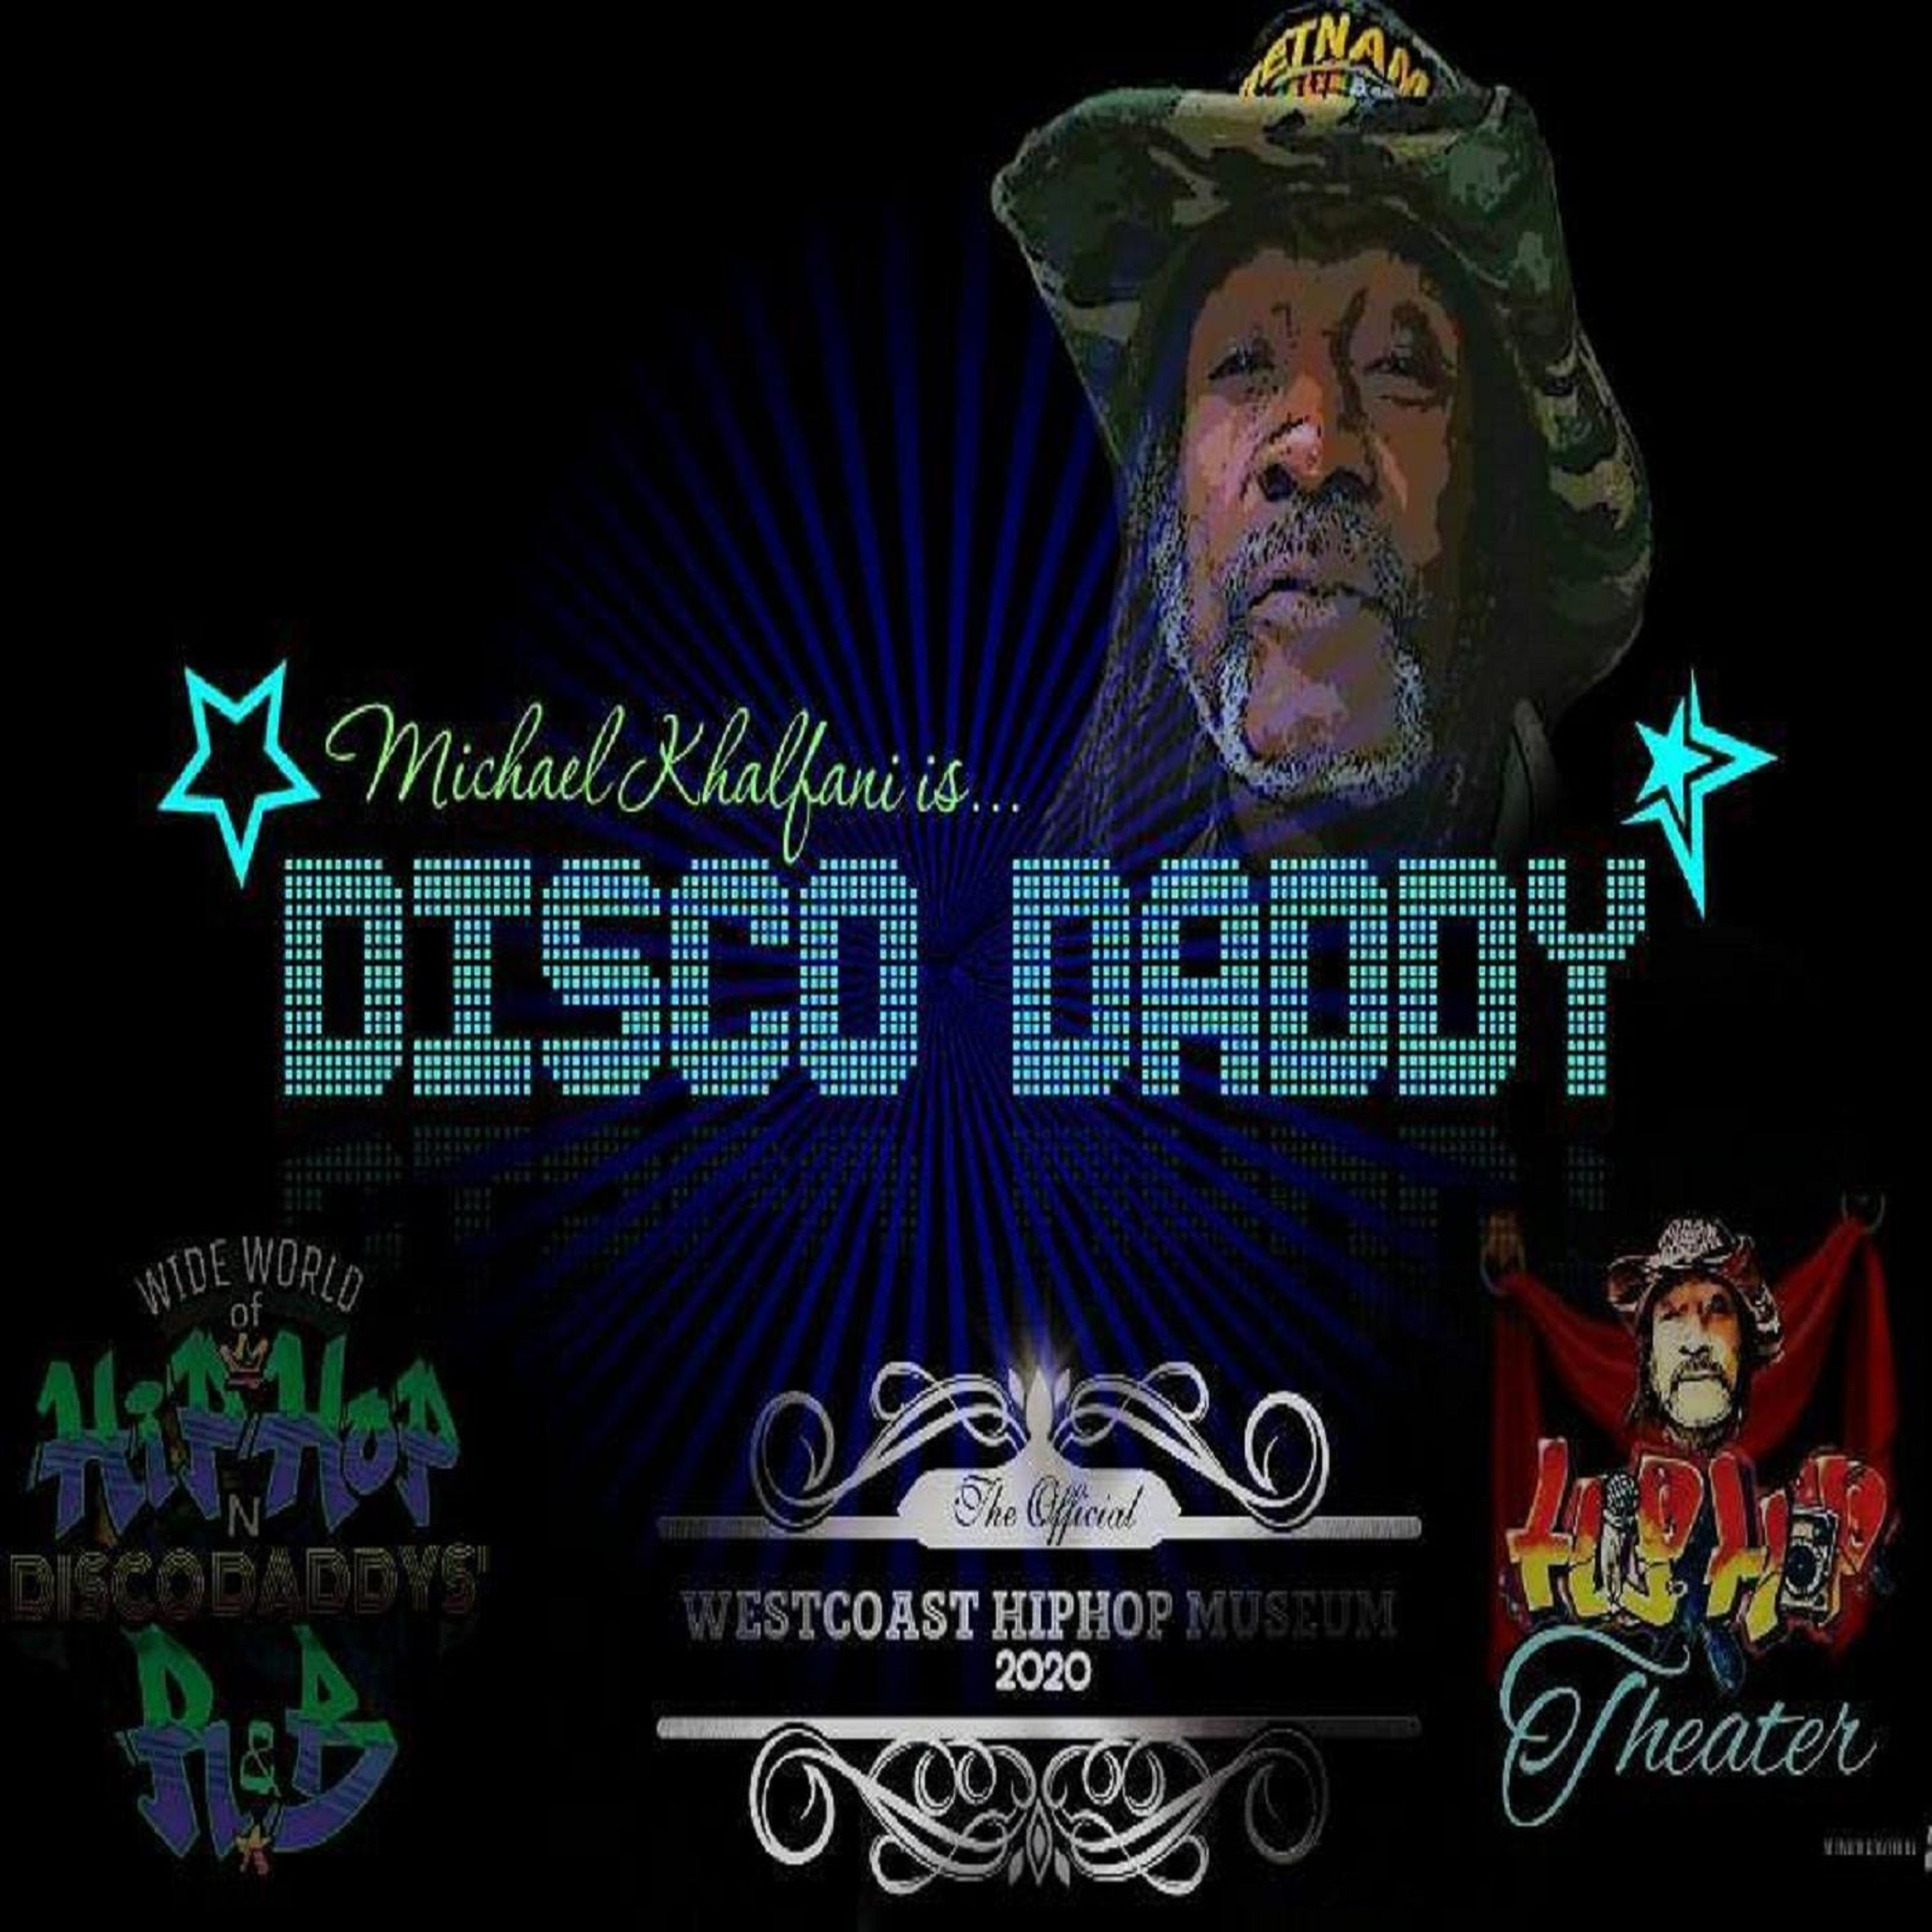 DISCO DADDYS' WIDE WORLD OF HIP-HOP AND R&B's artwork